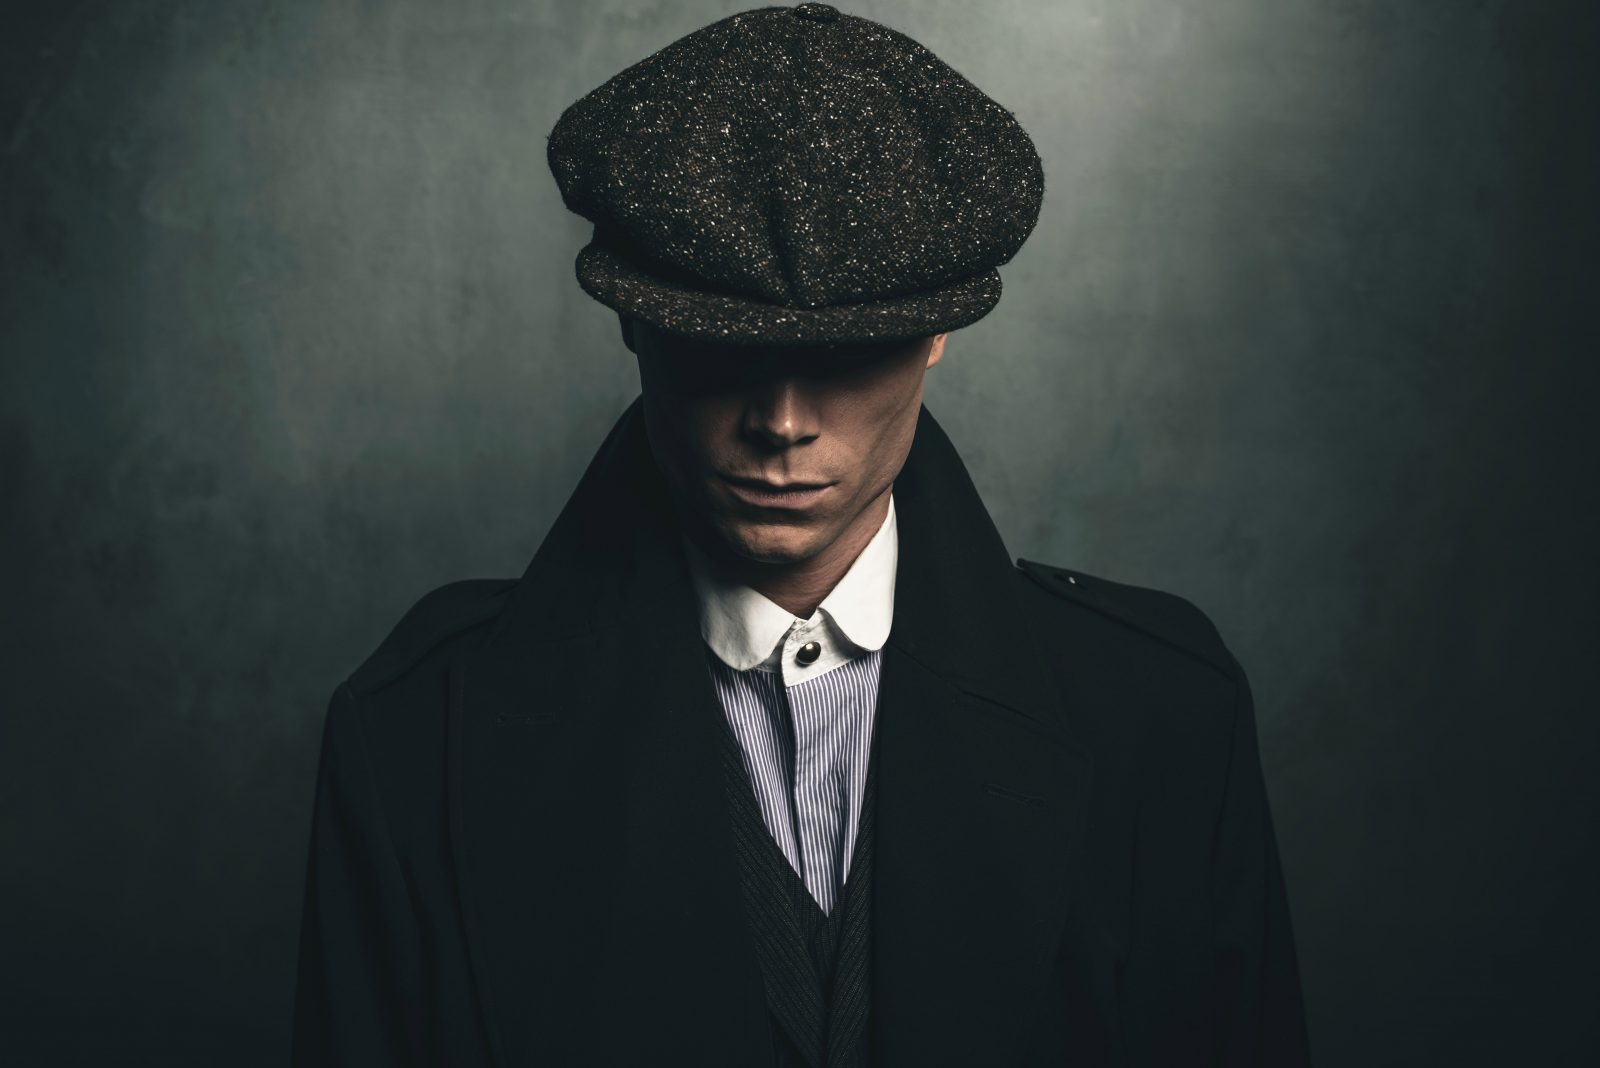 Brexit CANCELLED! – By order of the Peaky fucking Blinders